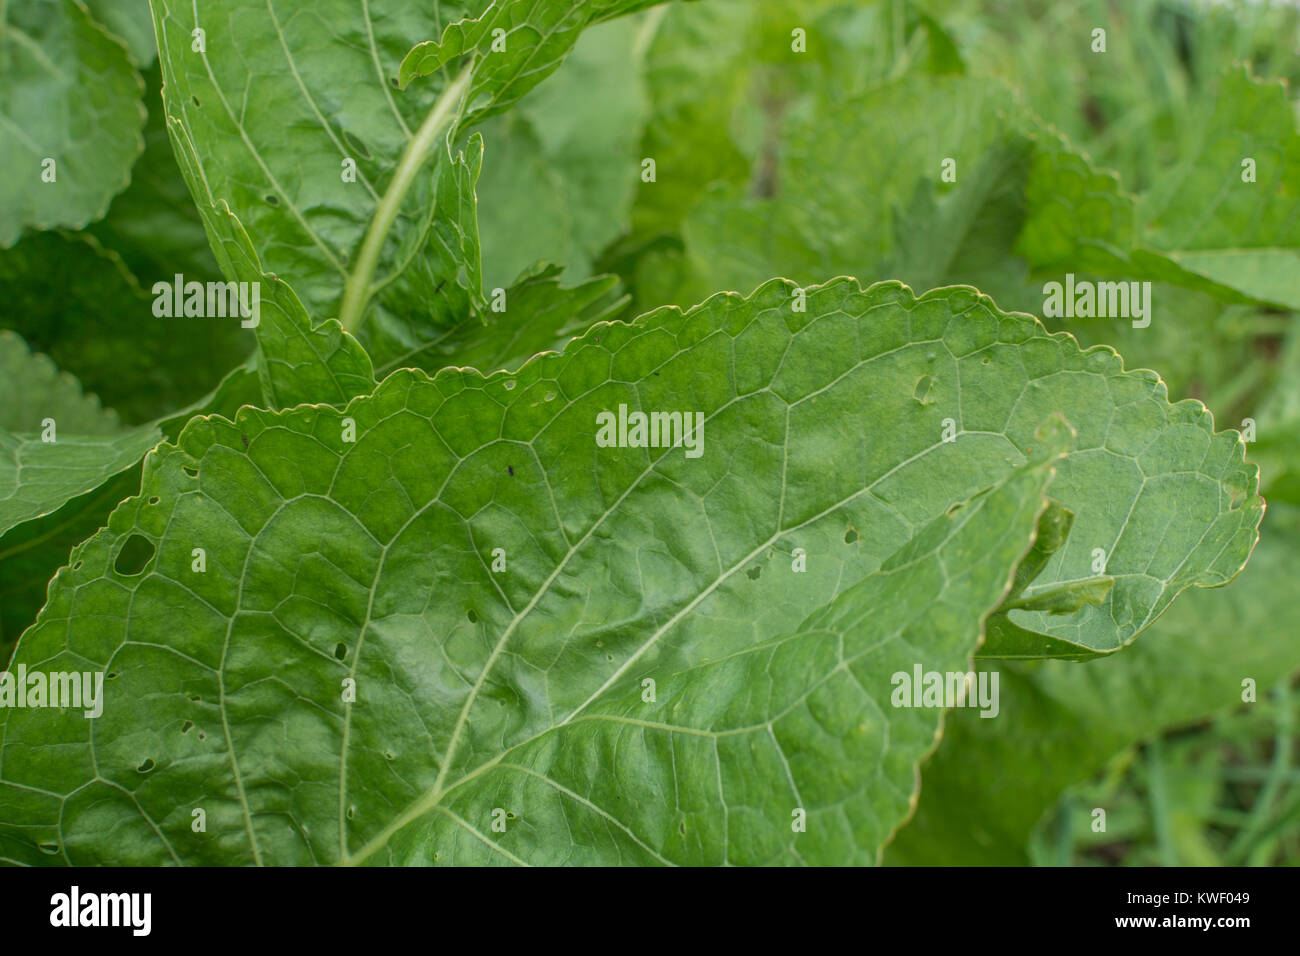 Close-up of the green leaves / foliage of Horseradish / Armoracia rusticana growing - the condiment used with beef. - Stock Image